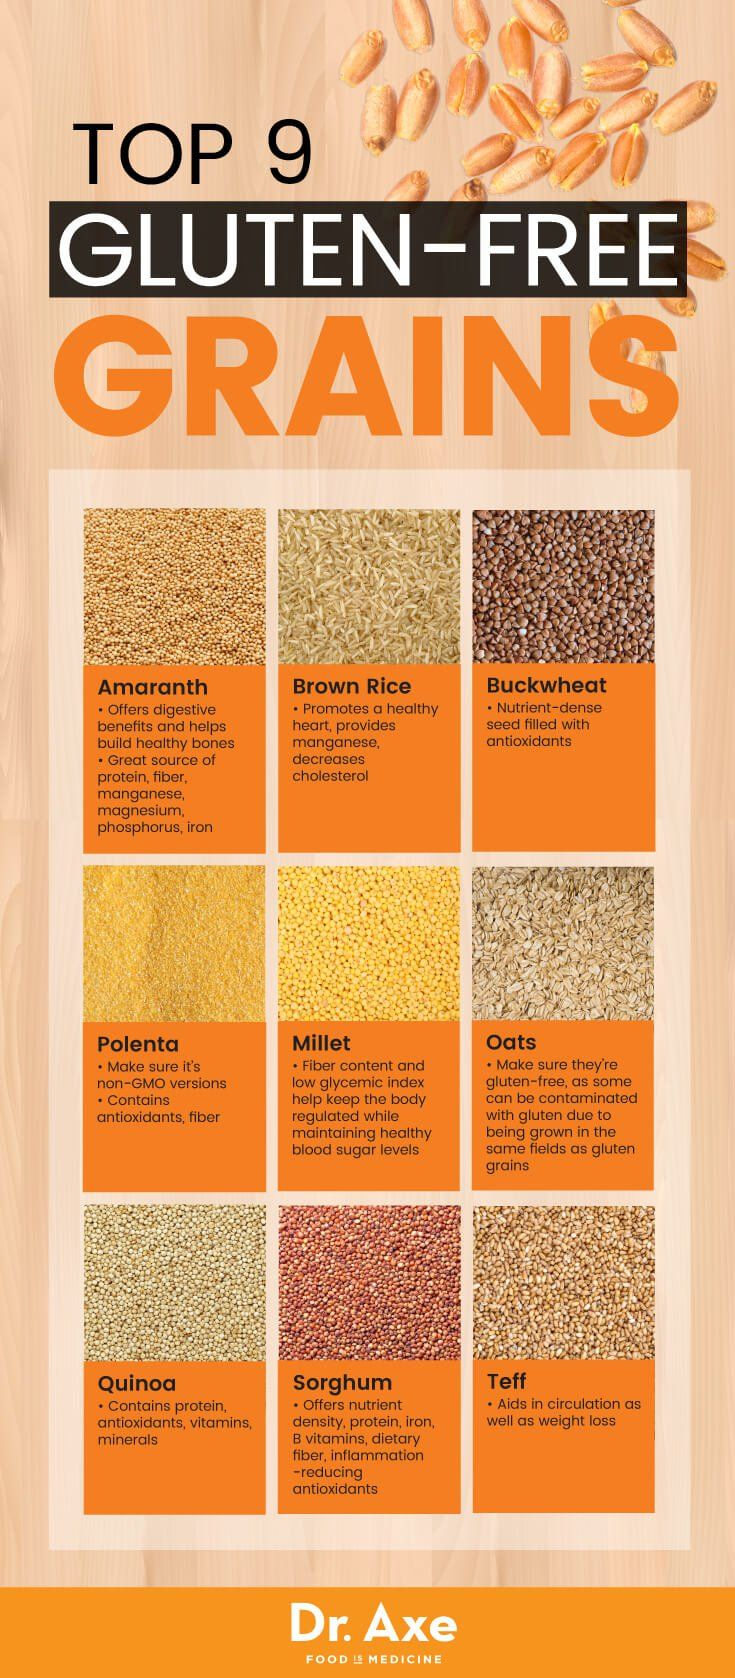 Top nine gluten-free grains - Dr. Axe